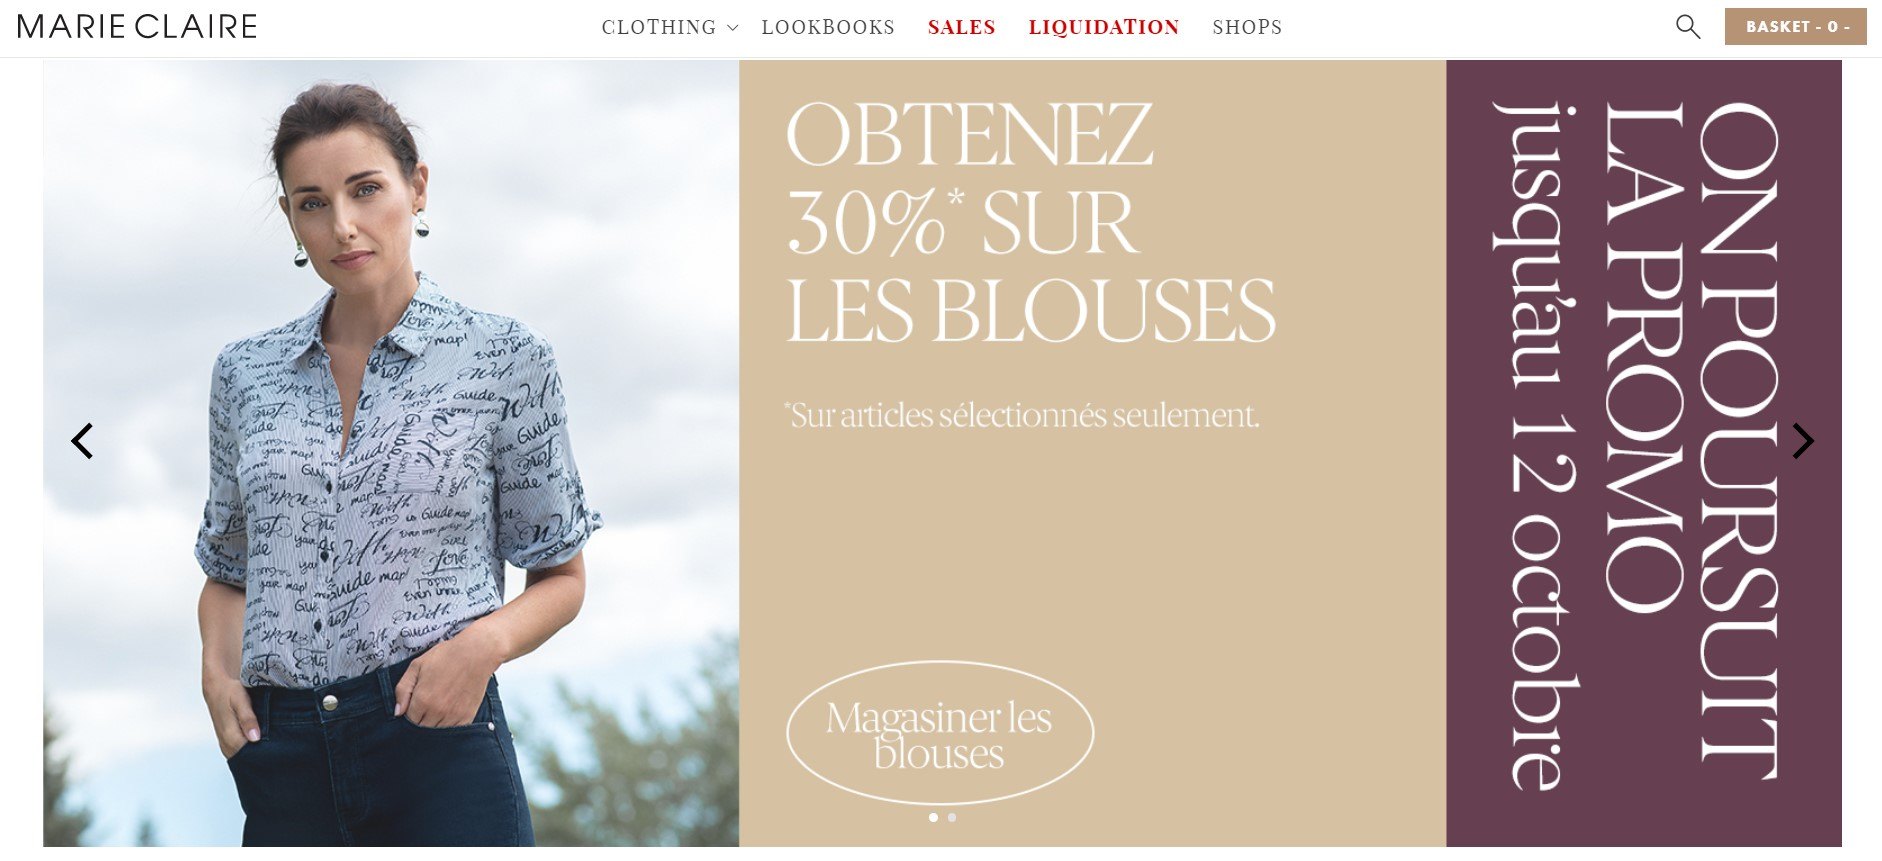 marie claire boutiques women's clothing store in quebec